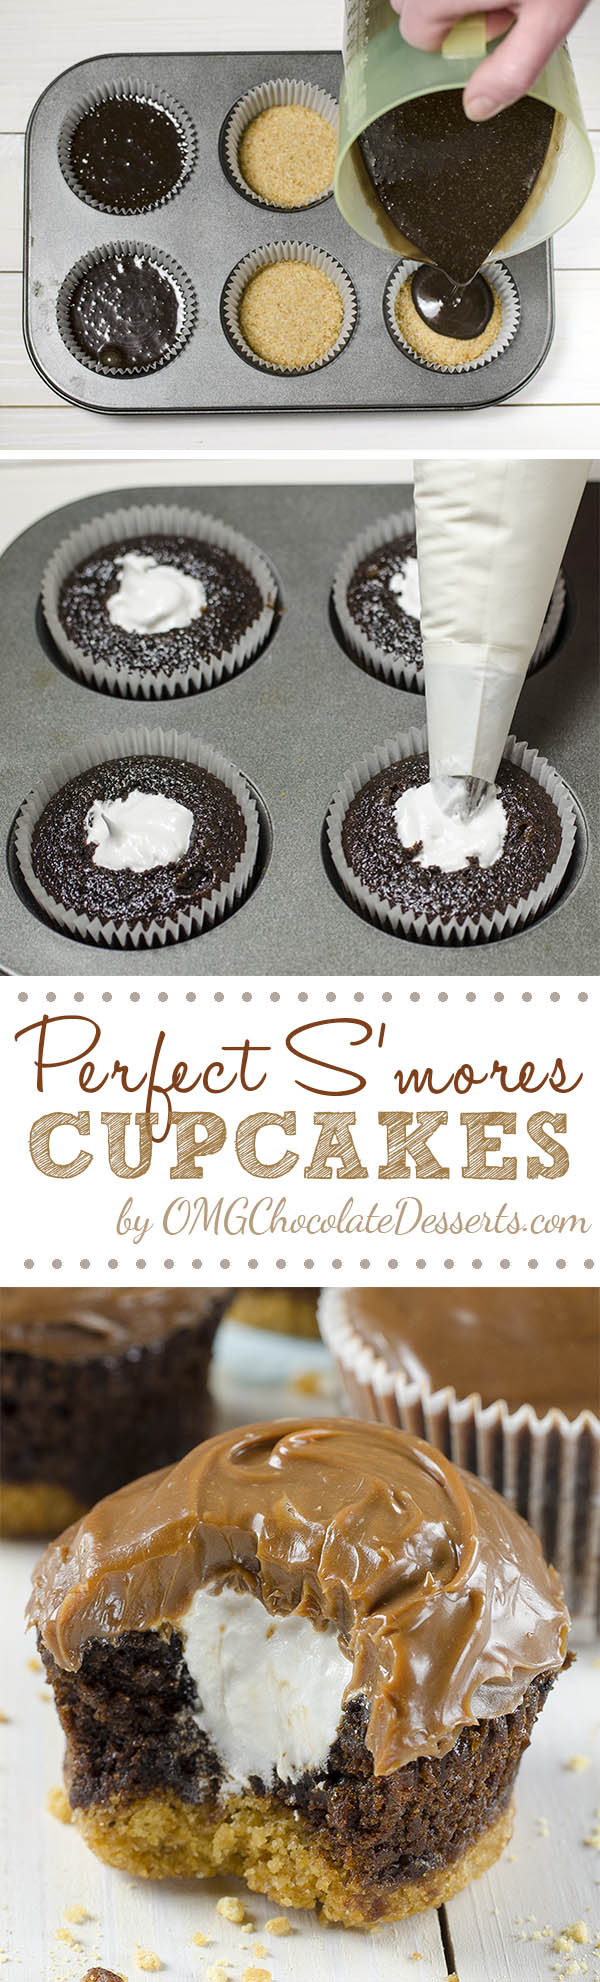 Perfect S'mores Cupcakes - delicious chocolate cupcakes with a graham cracker crust, filled with light and fluffymarshmallow filling and topped with milk chocolate ganache.